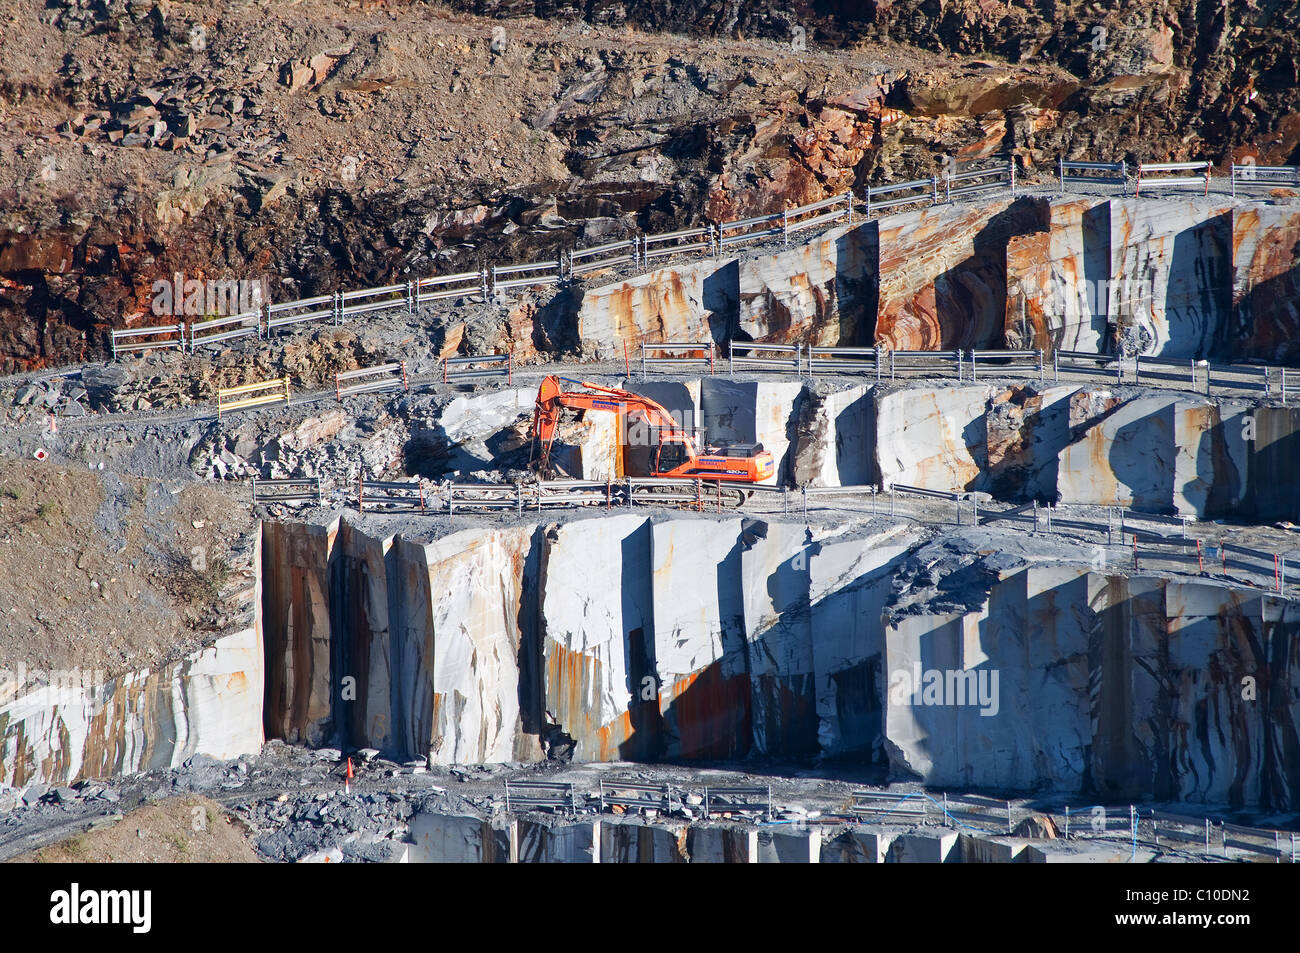 A close up of the workings of Delabole slate quarry, Delabole, Cornwall, UK - Stock Image